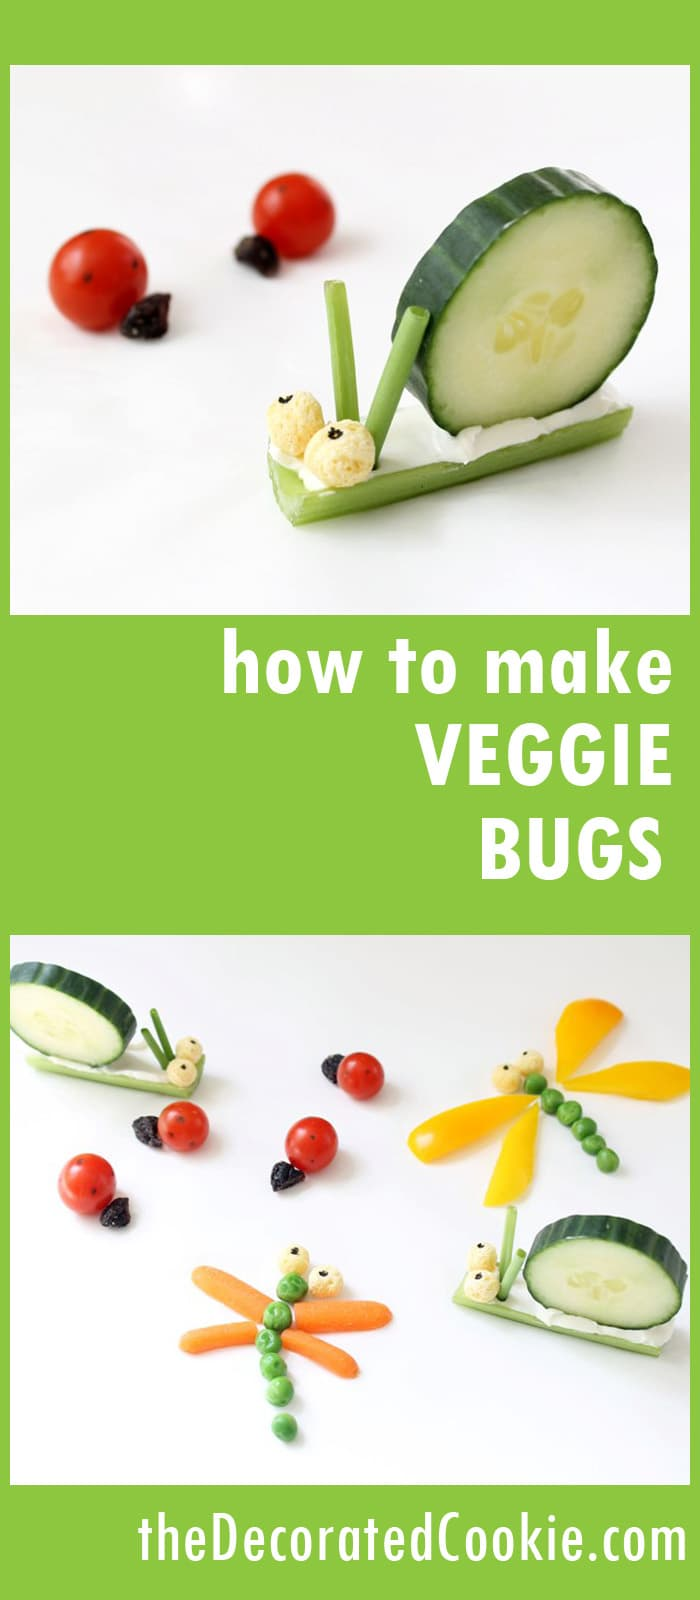 How to Make Simple Veggie Bugs